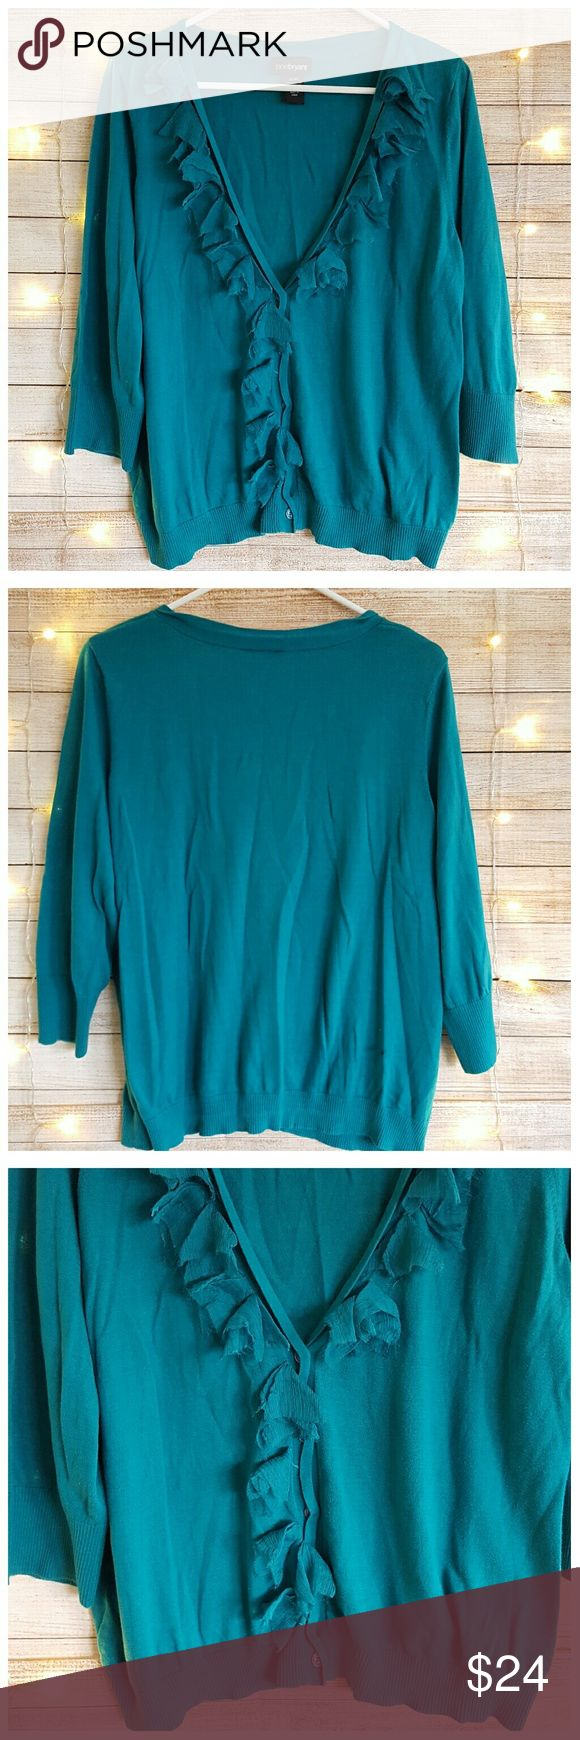 Lane Bryant Turquoise Cardigan Sweater Embellished Lane Bryant Womens Cardigan Sweater Top - Sexy Embellished V-Neck; Button Front; 3/4 Sleeves; Turquoise. Plus Size:  22/24  Gently used condition with no flaws. Please see photos for details.  Armpit to armpit:  25 inches, laying flat, unstretched. Length:  22 inches. Lane Bryant Sweaters Cardigans